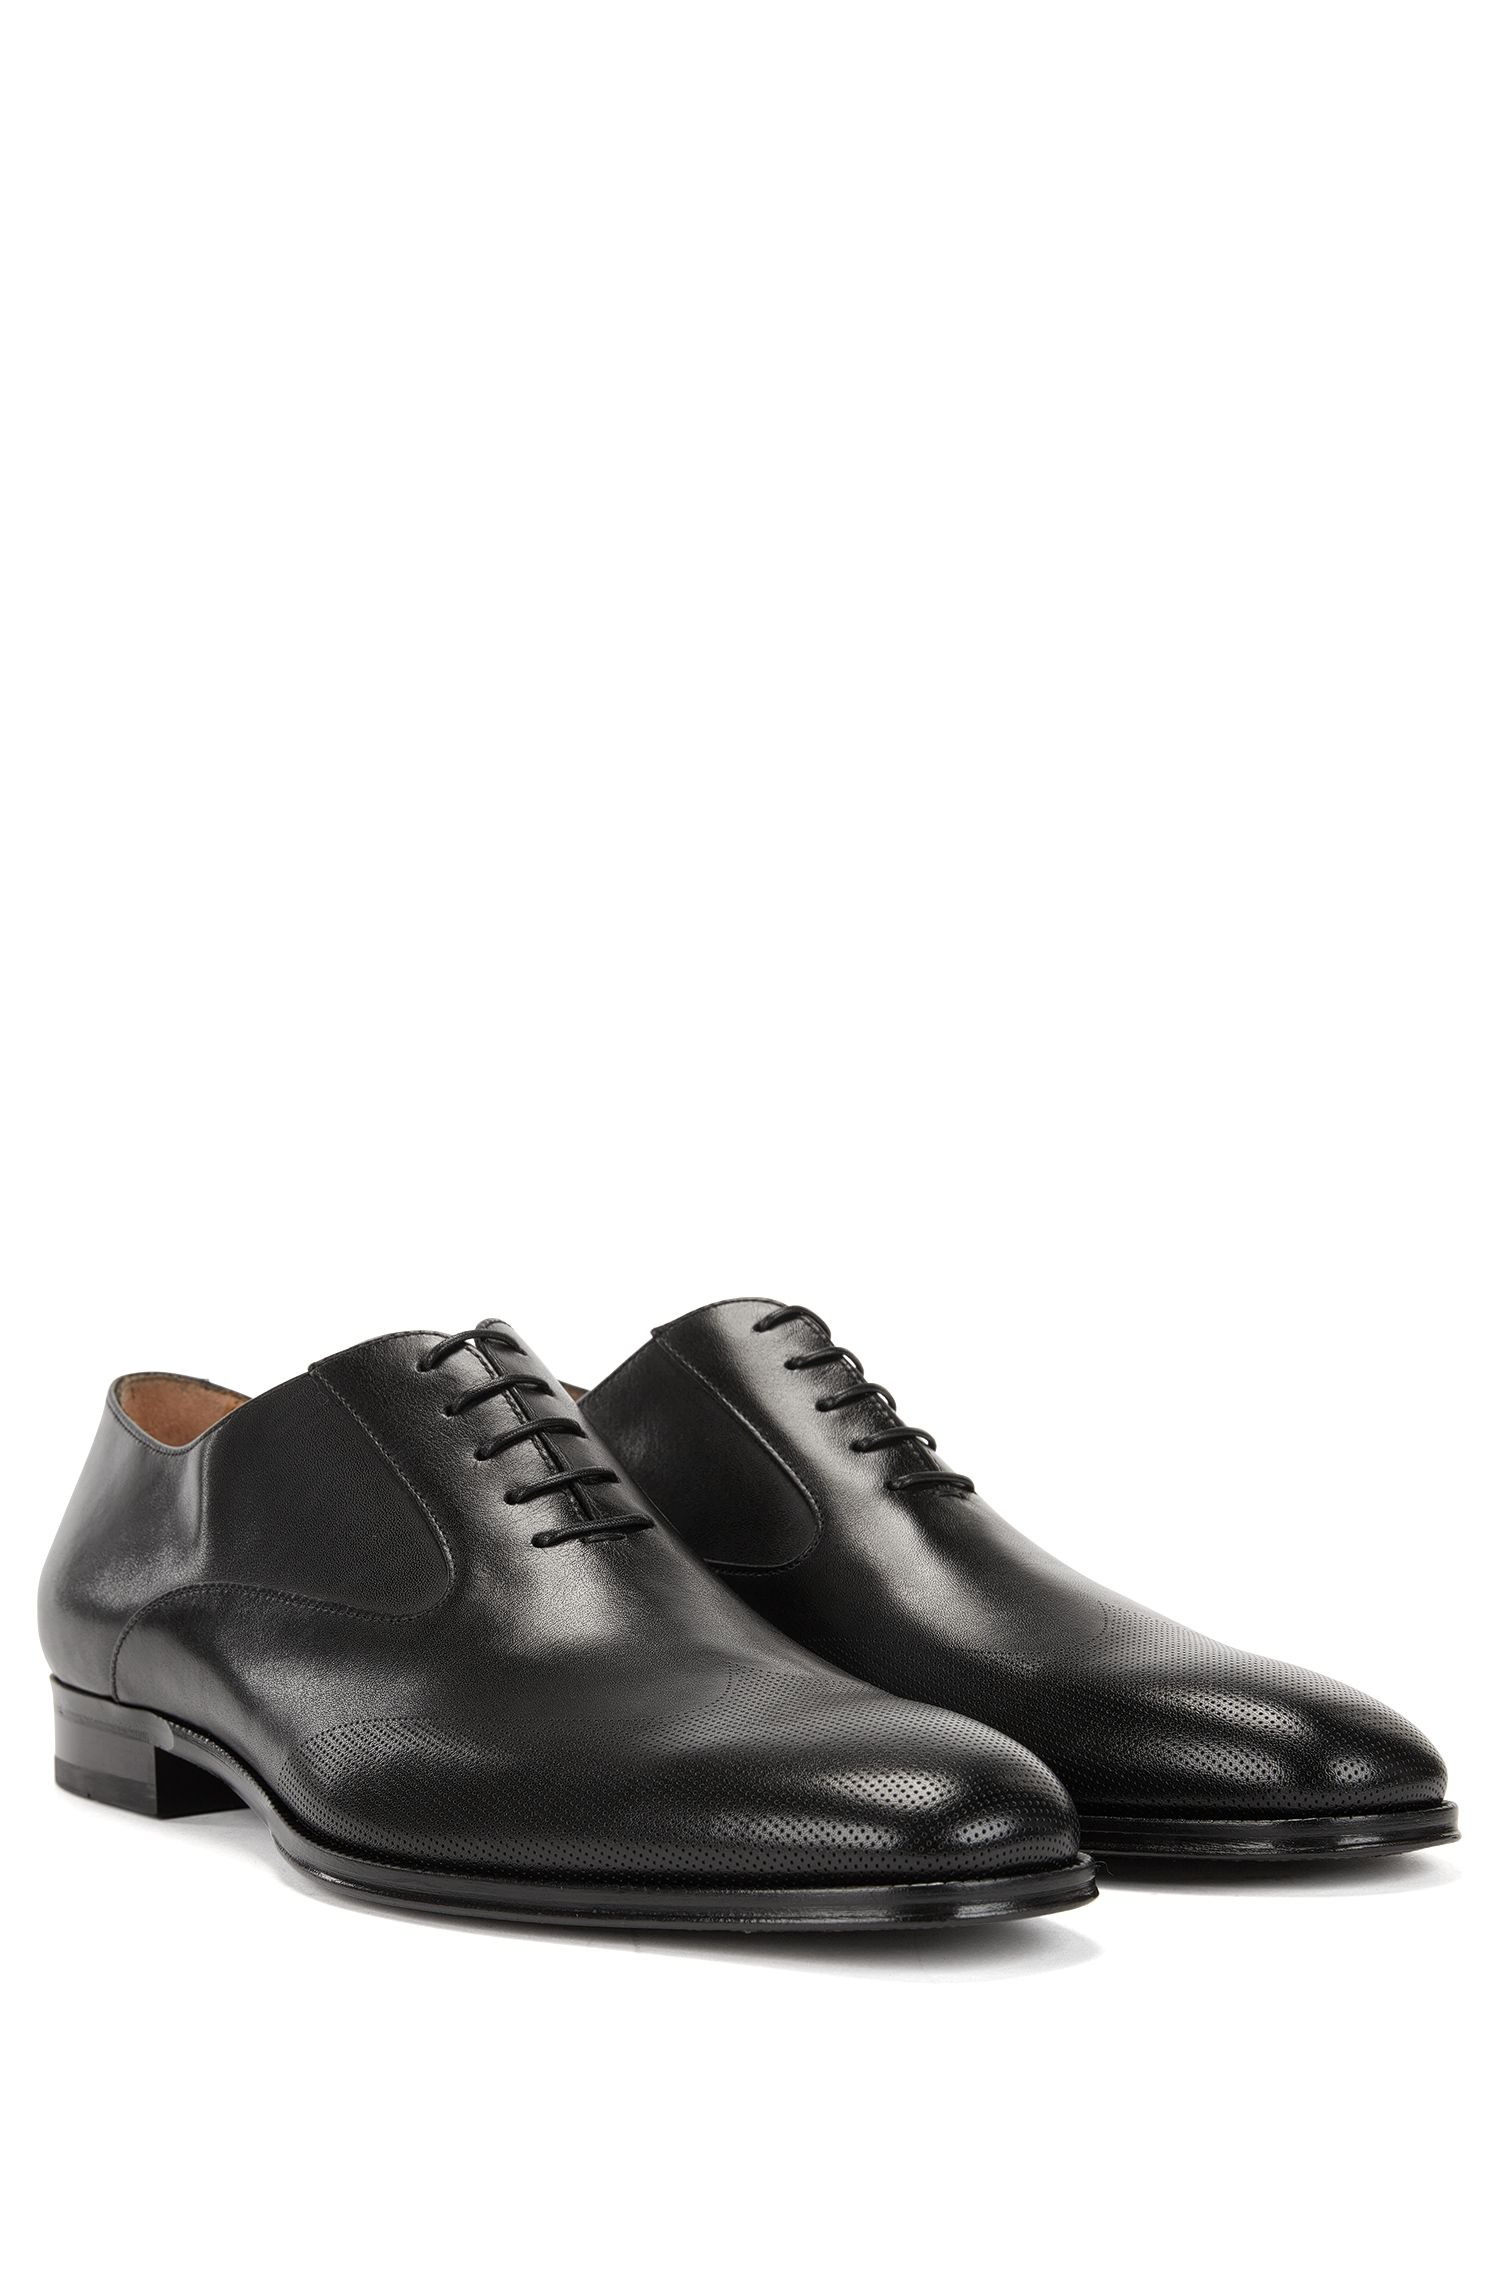 Italian-made Oxford shoes in burnished calf leather